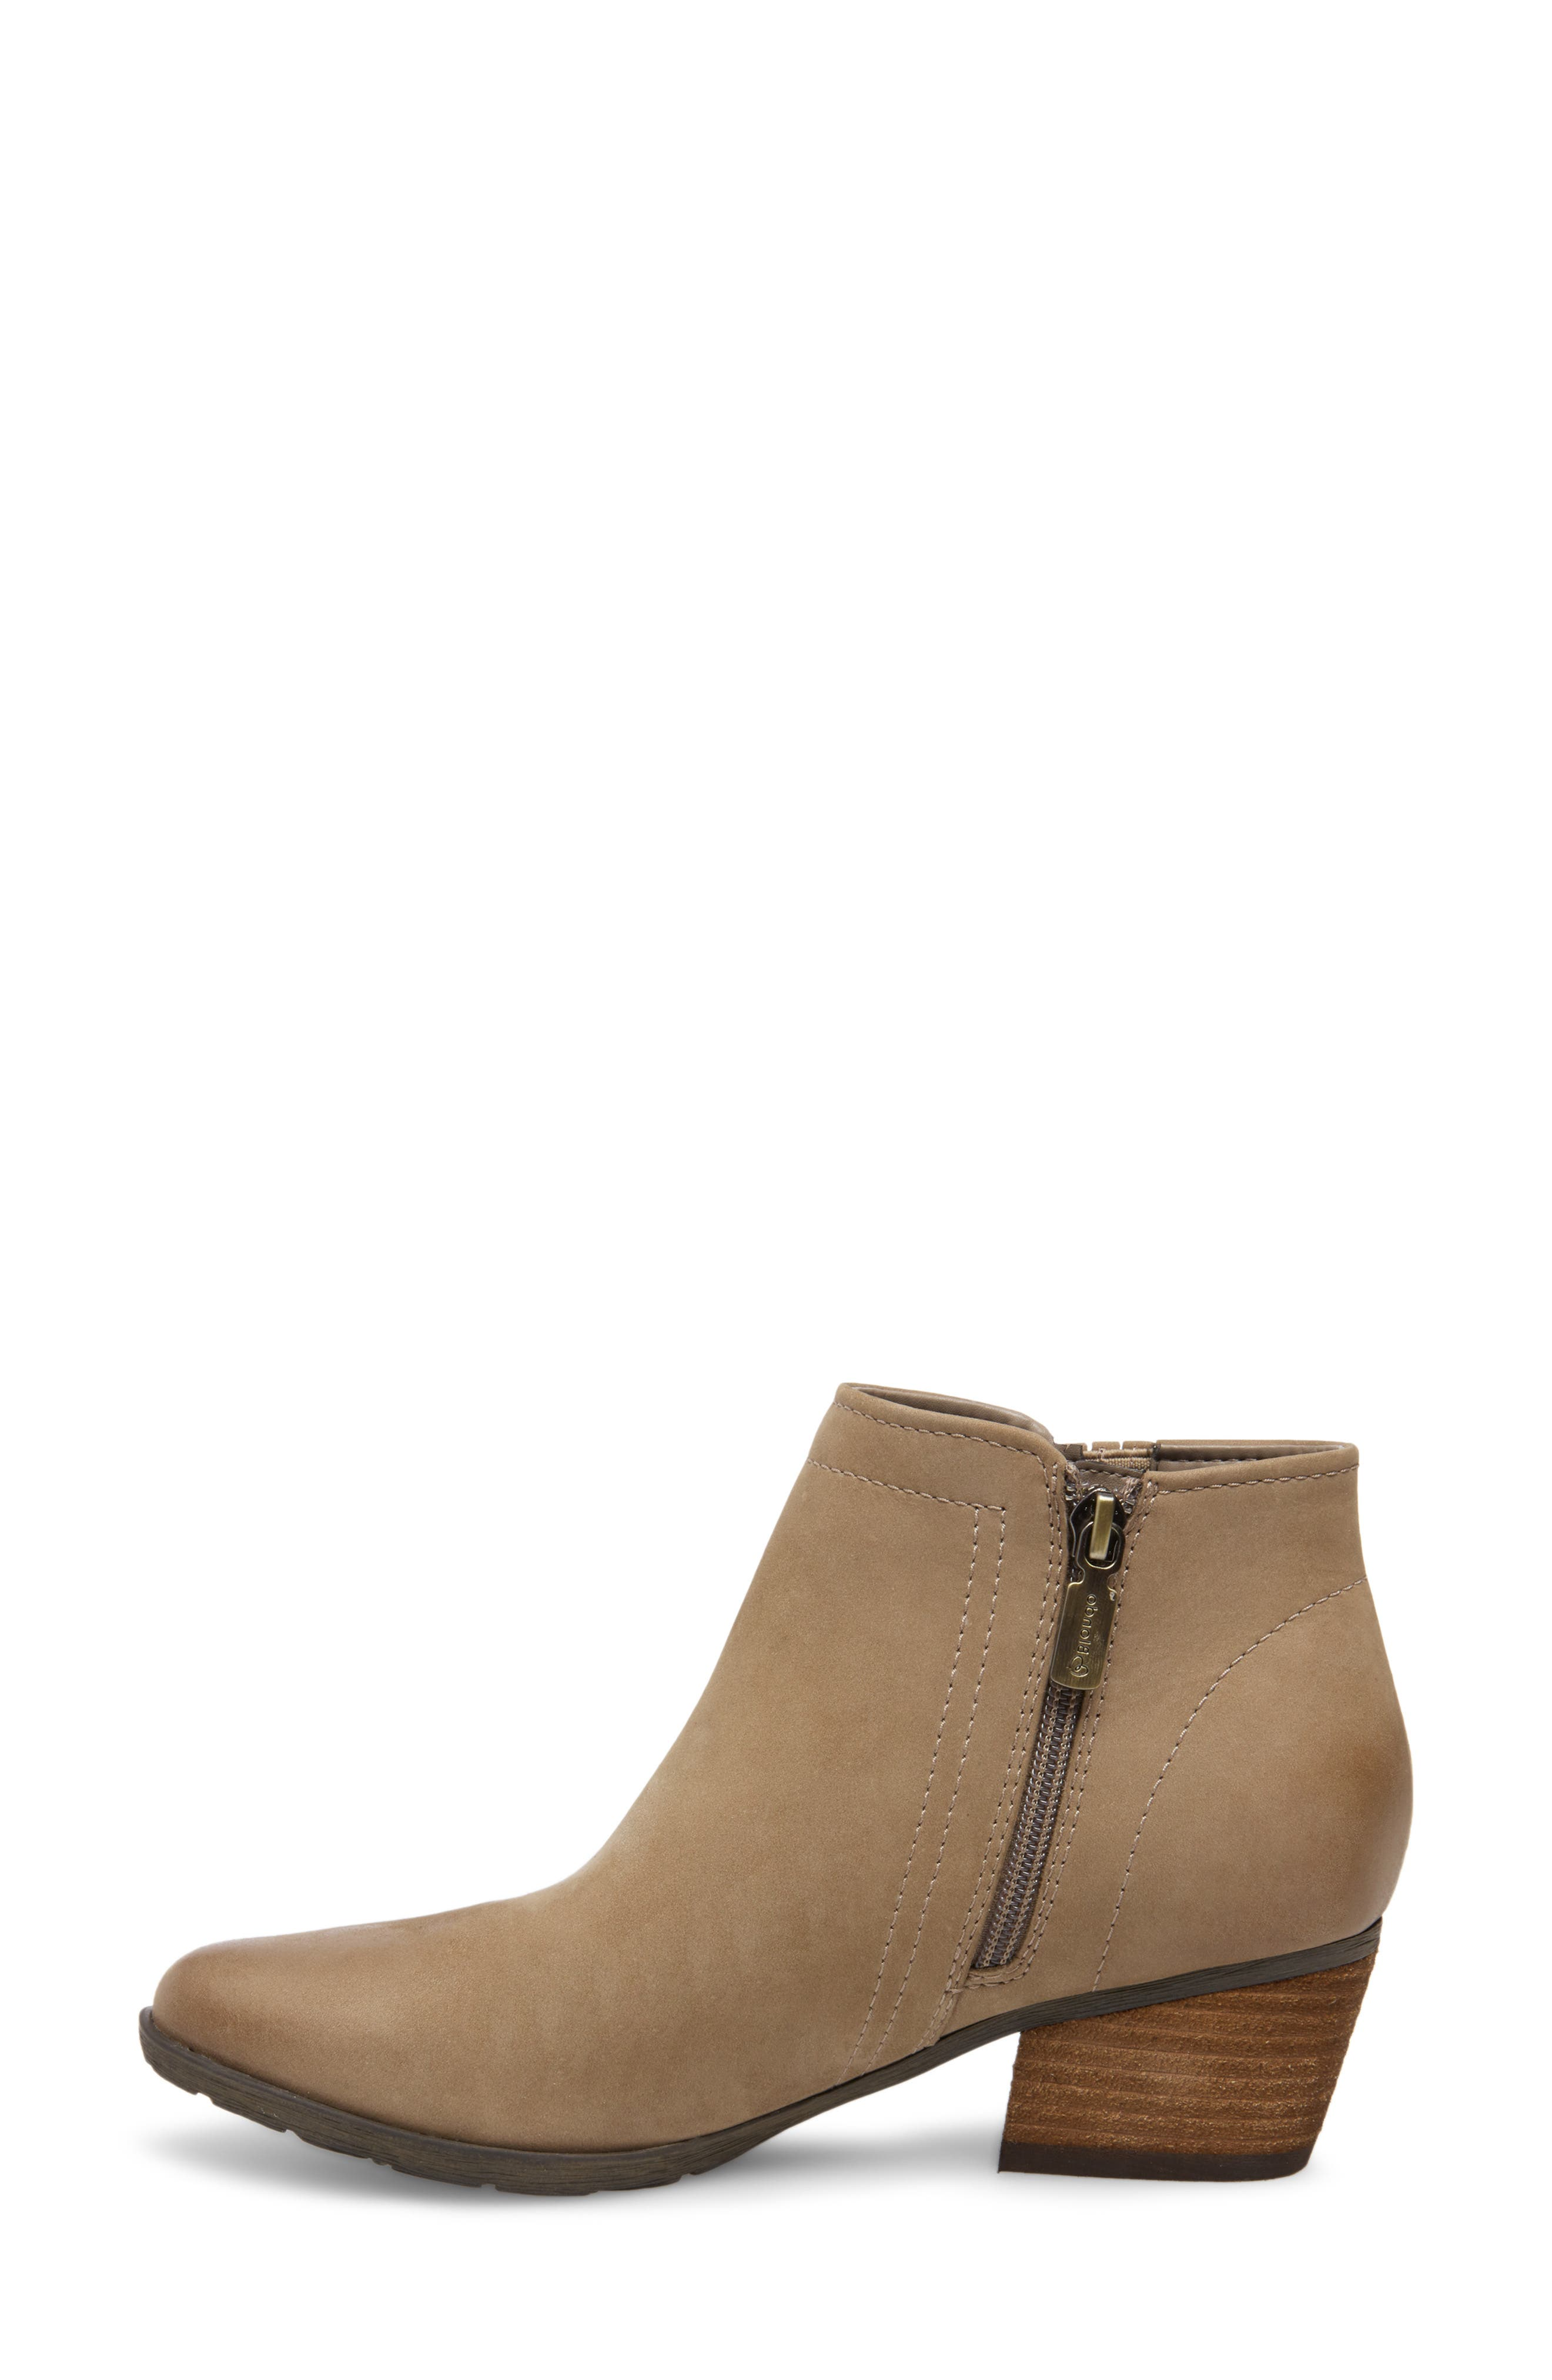 'Valli' Waterproof  Bootie,                             Alternate thumbnail 8, color,                             MUSHROOM NUBUCK